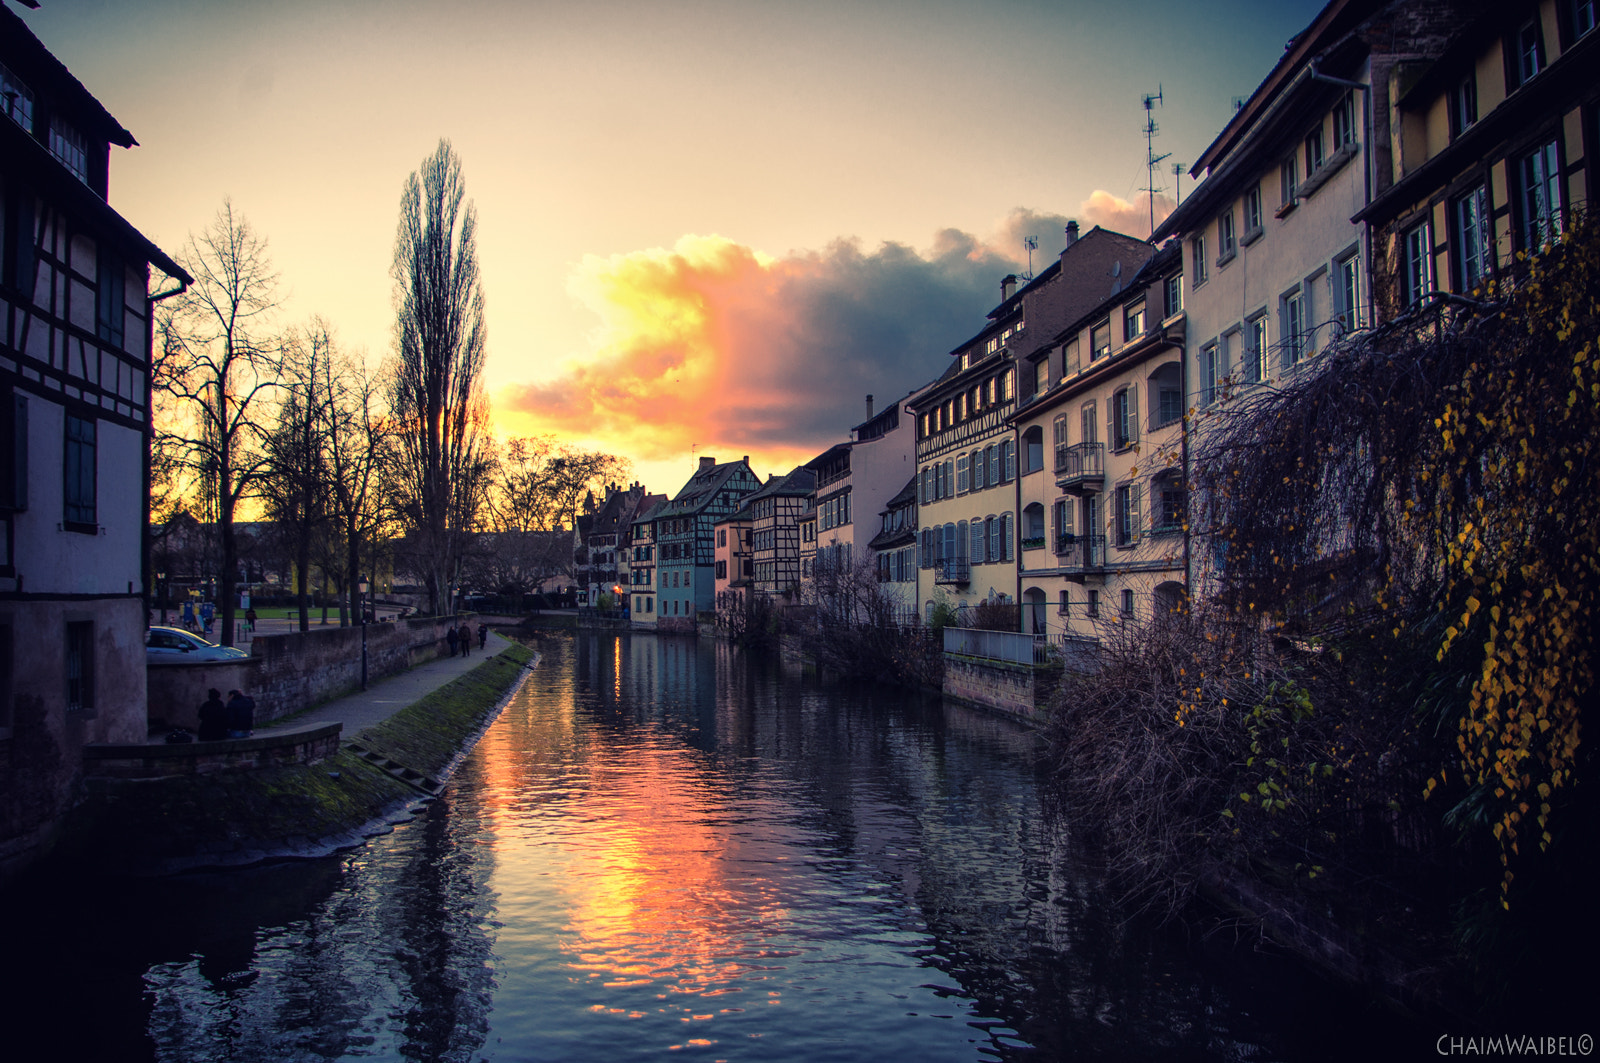 Photograph Petite France, Strasbourg by Chaim Waibel on 500px